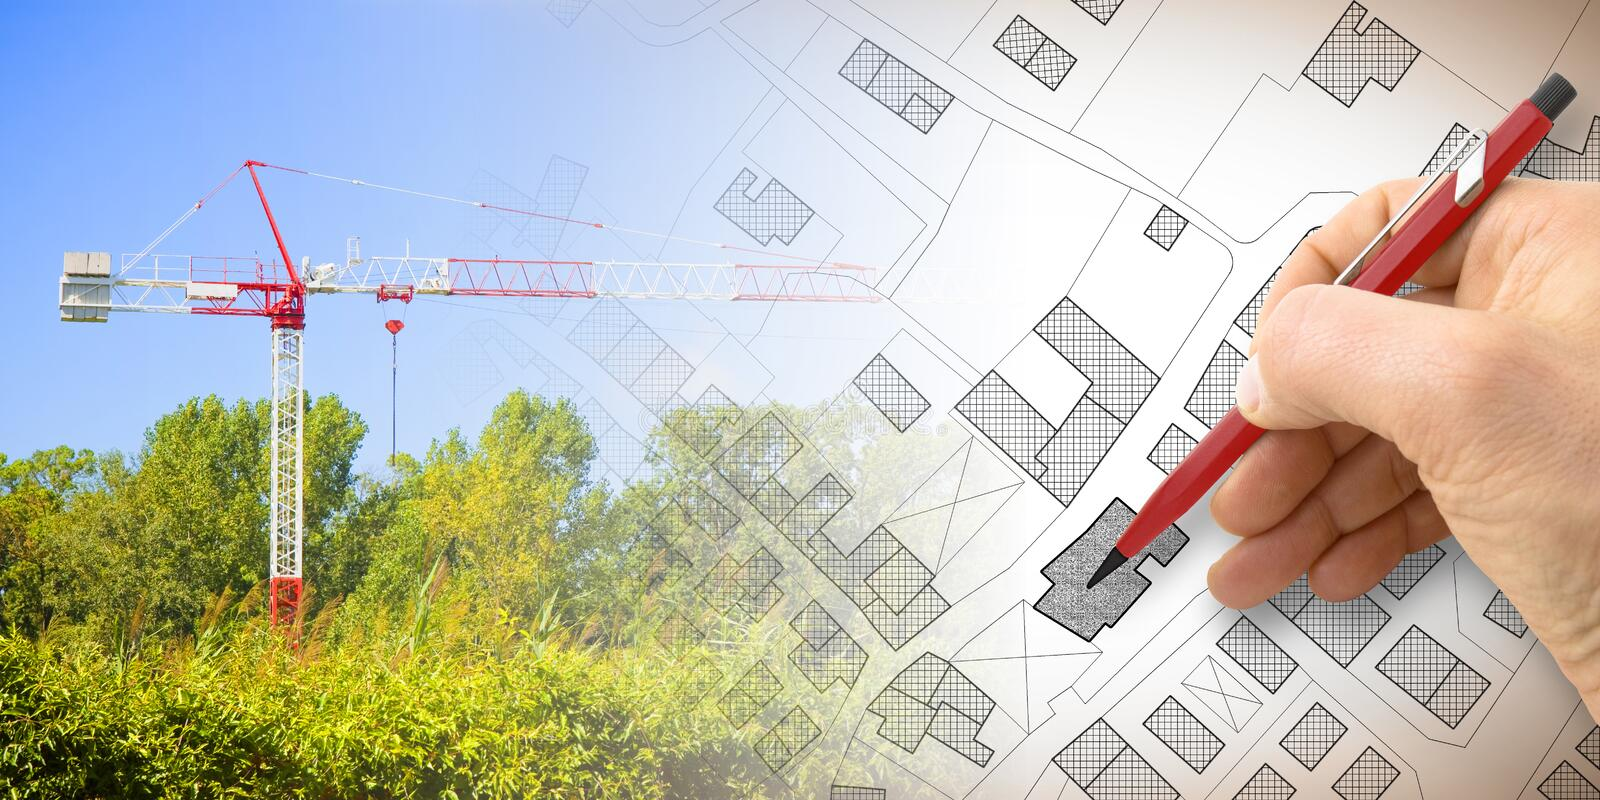 Building a new city - concept image with and drawing an imaginary cadastral map of territory with buildings, fields and roads and. A tower crane in a royalty free stock images